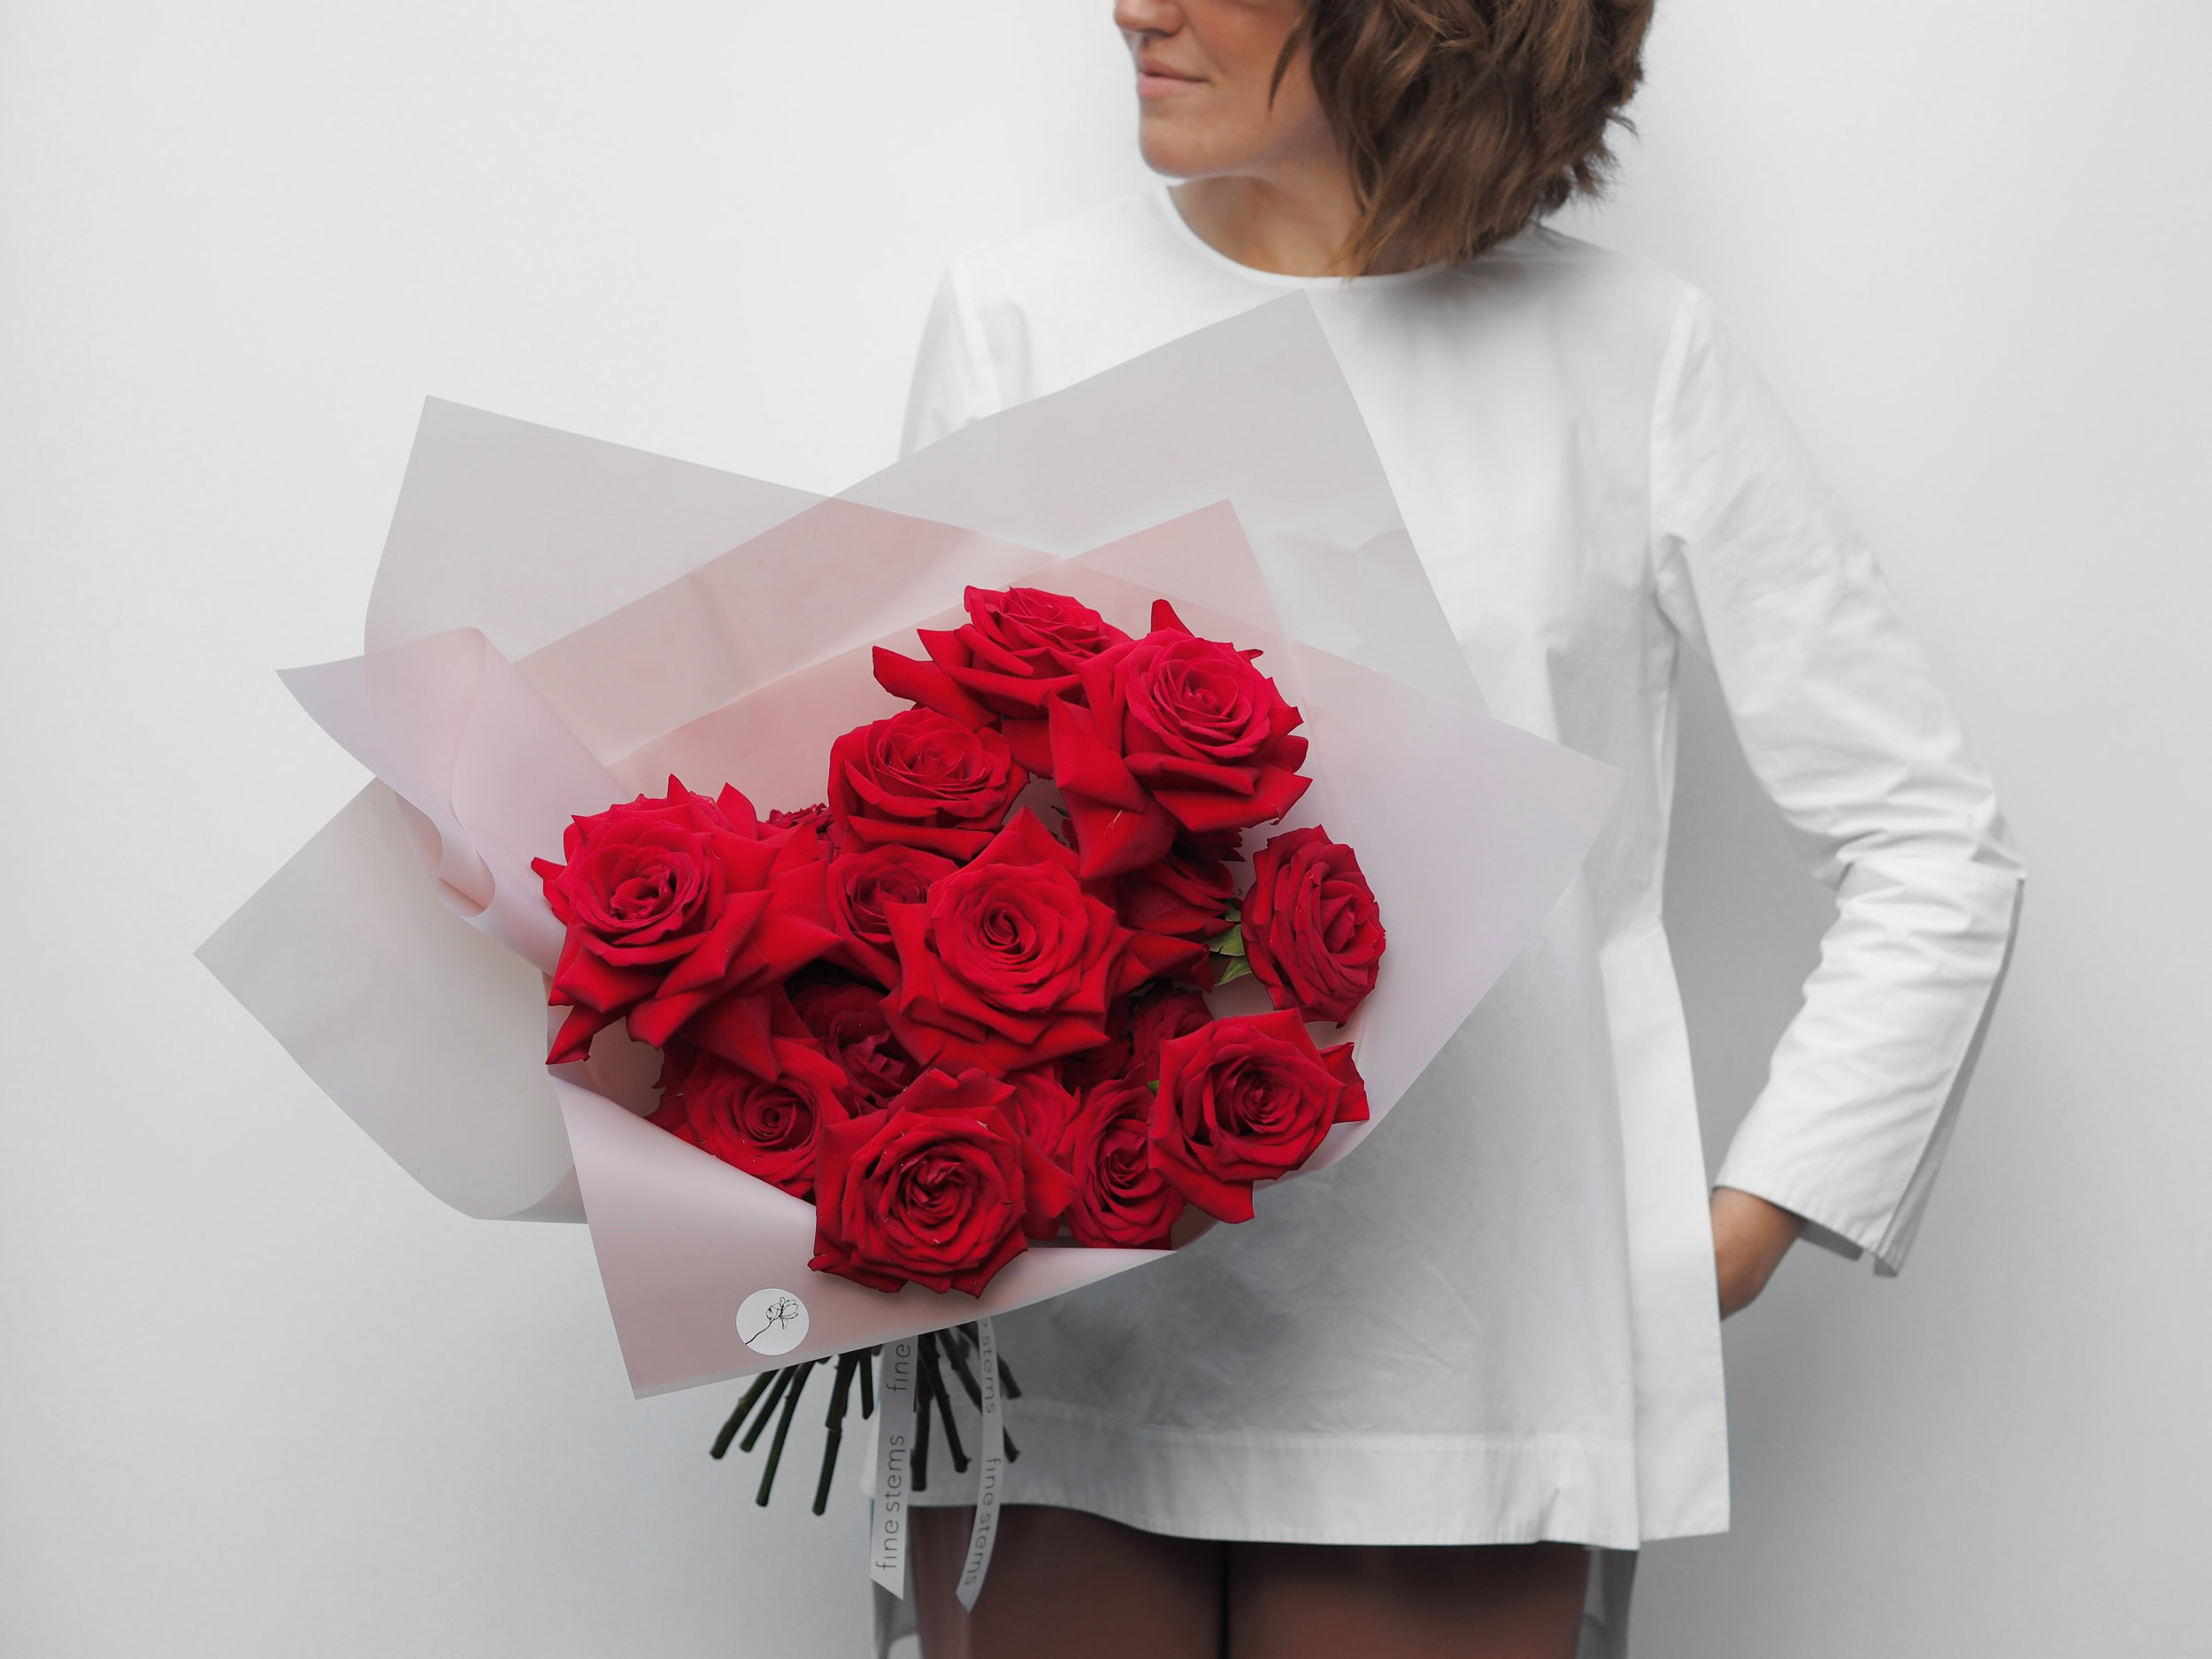 No. 6 - A mono bouquet of fragrant deep red roses. Red roses are the true symbol of romance and the soft velvety texture gives a beautiful matt sheen.